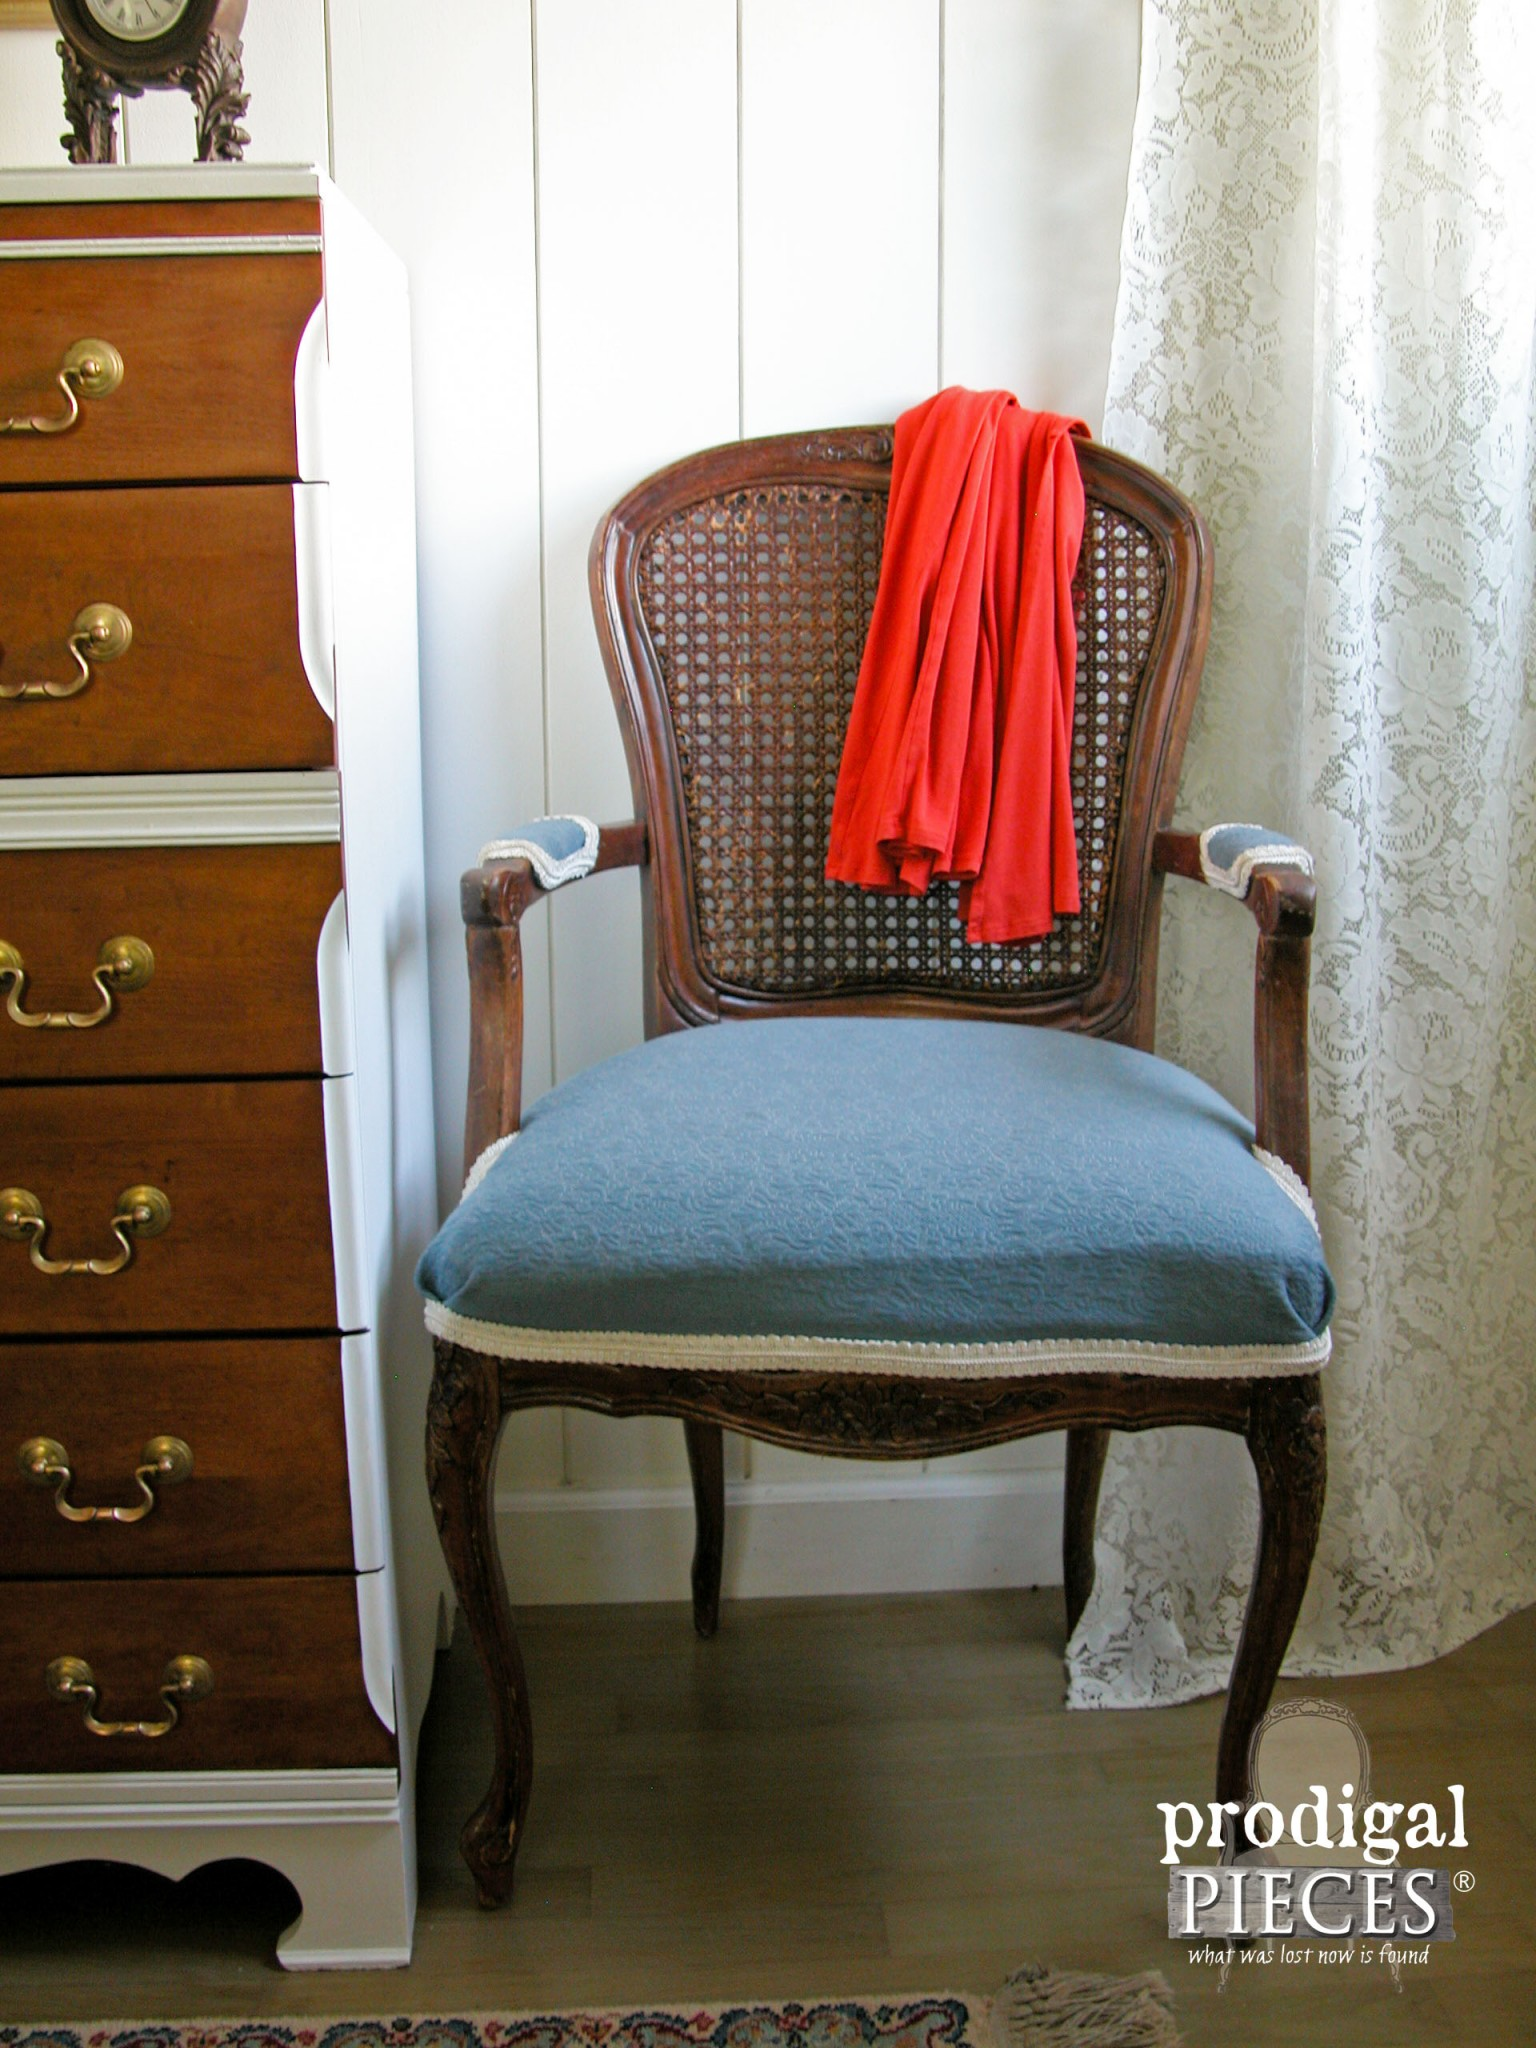 Vintage Caned and Upholstered Queen Anne Style Chair with Blue Accents by Prodigal Pieces | www.prodigalpieces.com